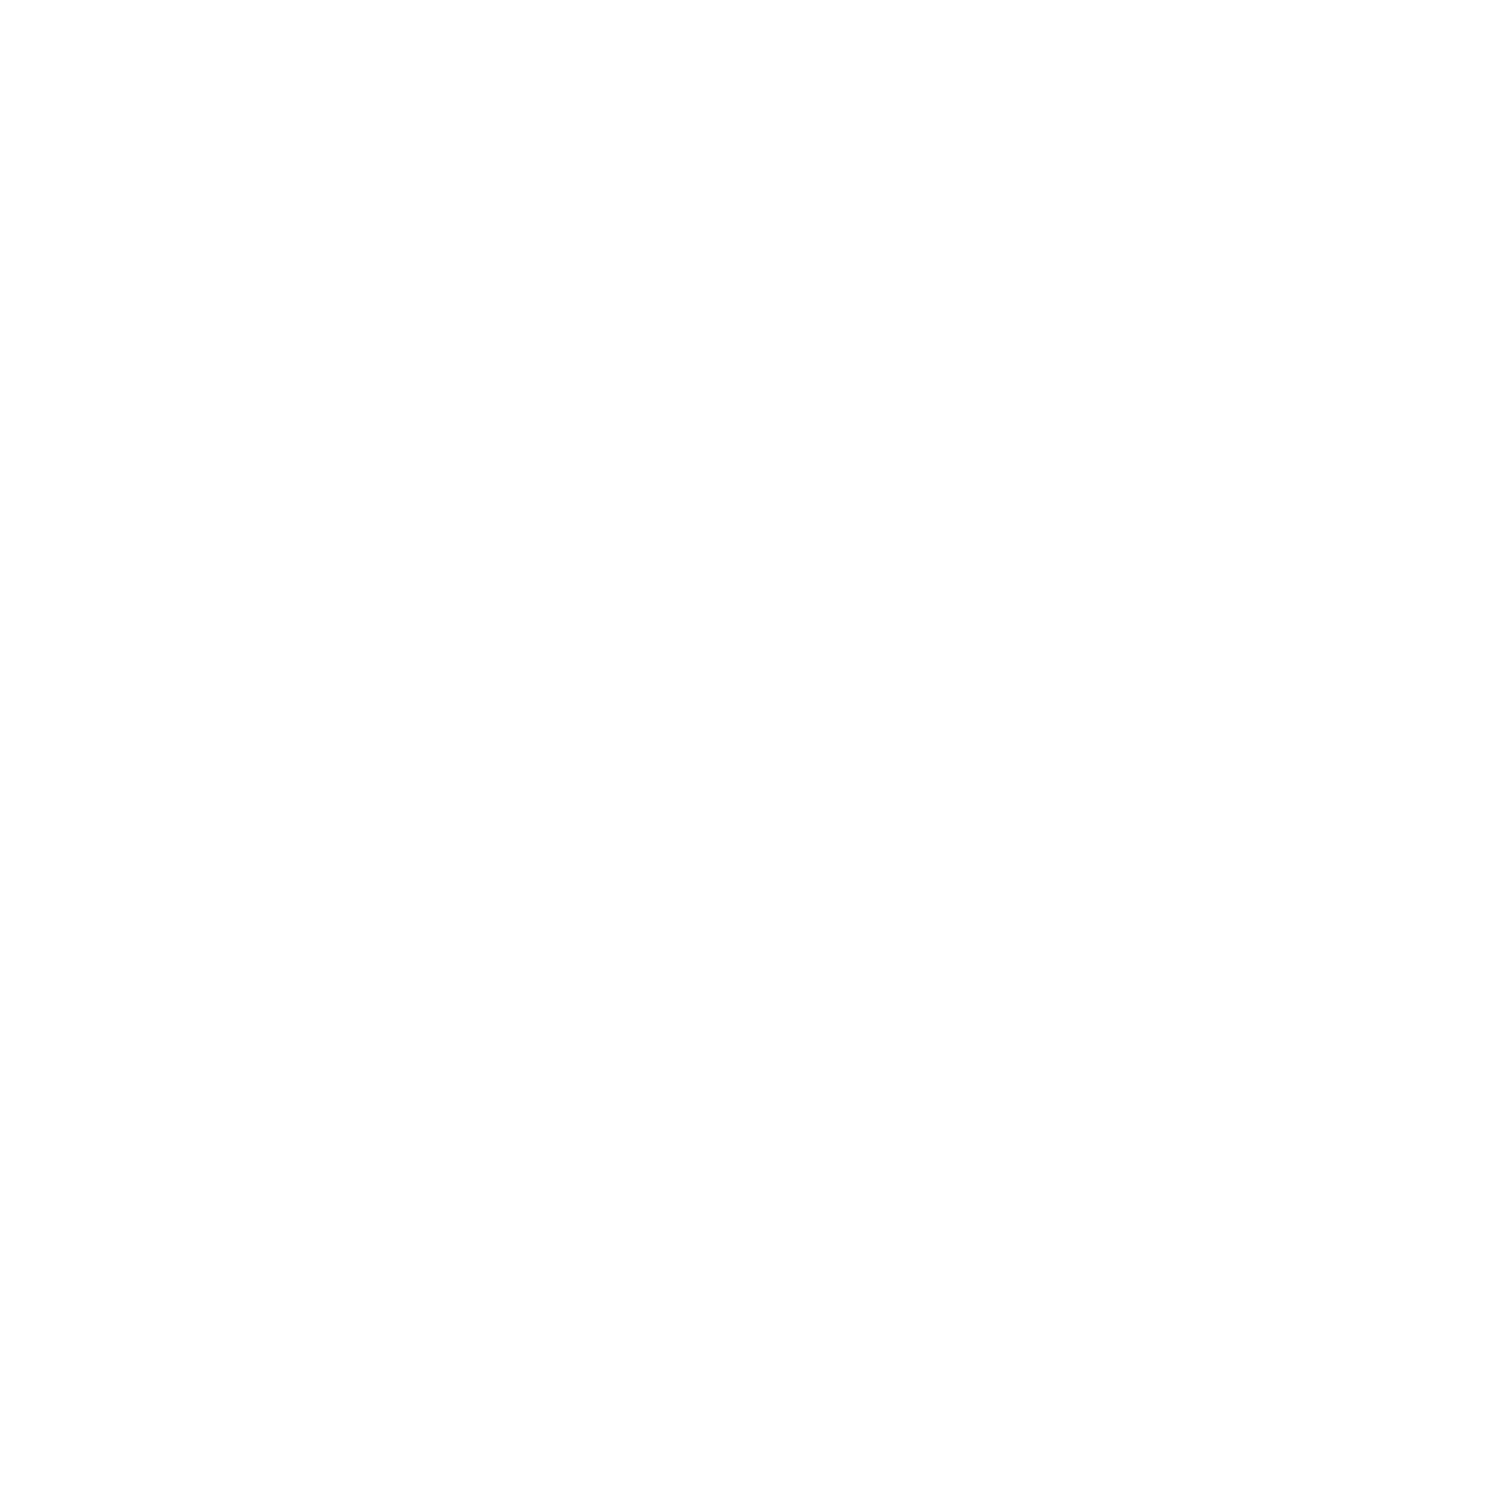 Spirit of the Bear